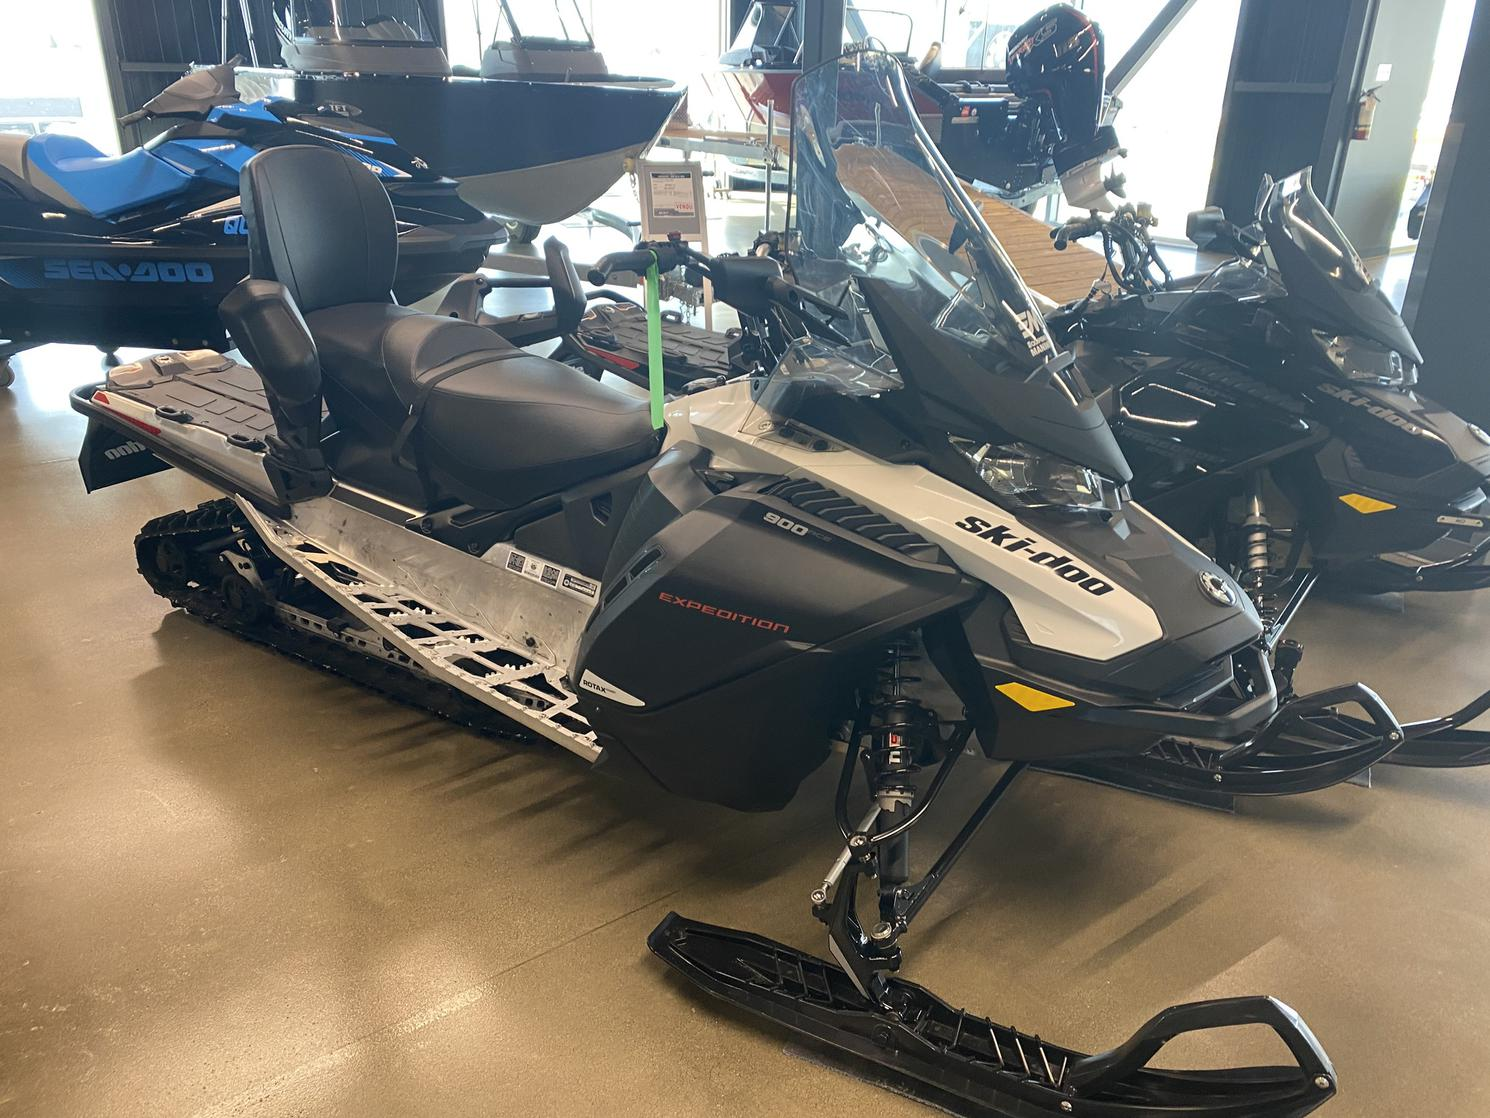 Ski-Doo EXPEDITION 900 ACE 2021